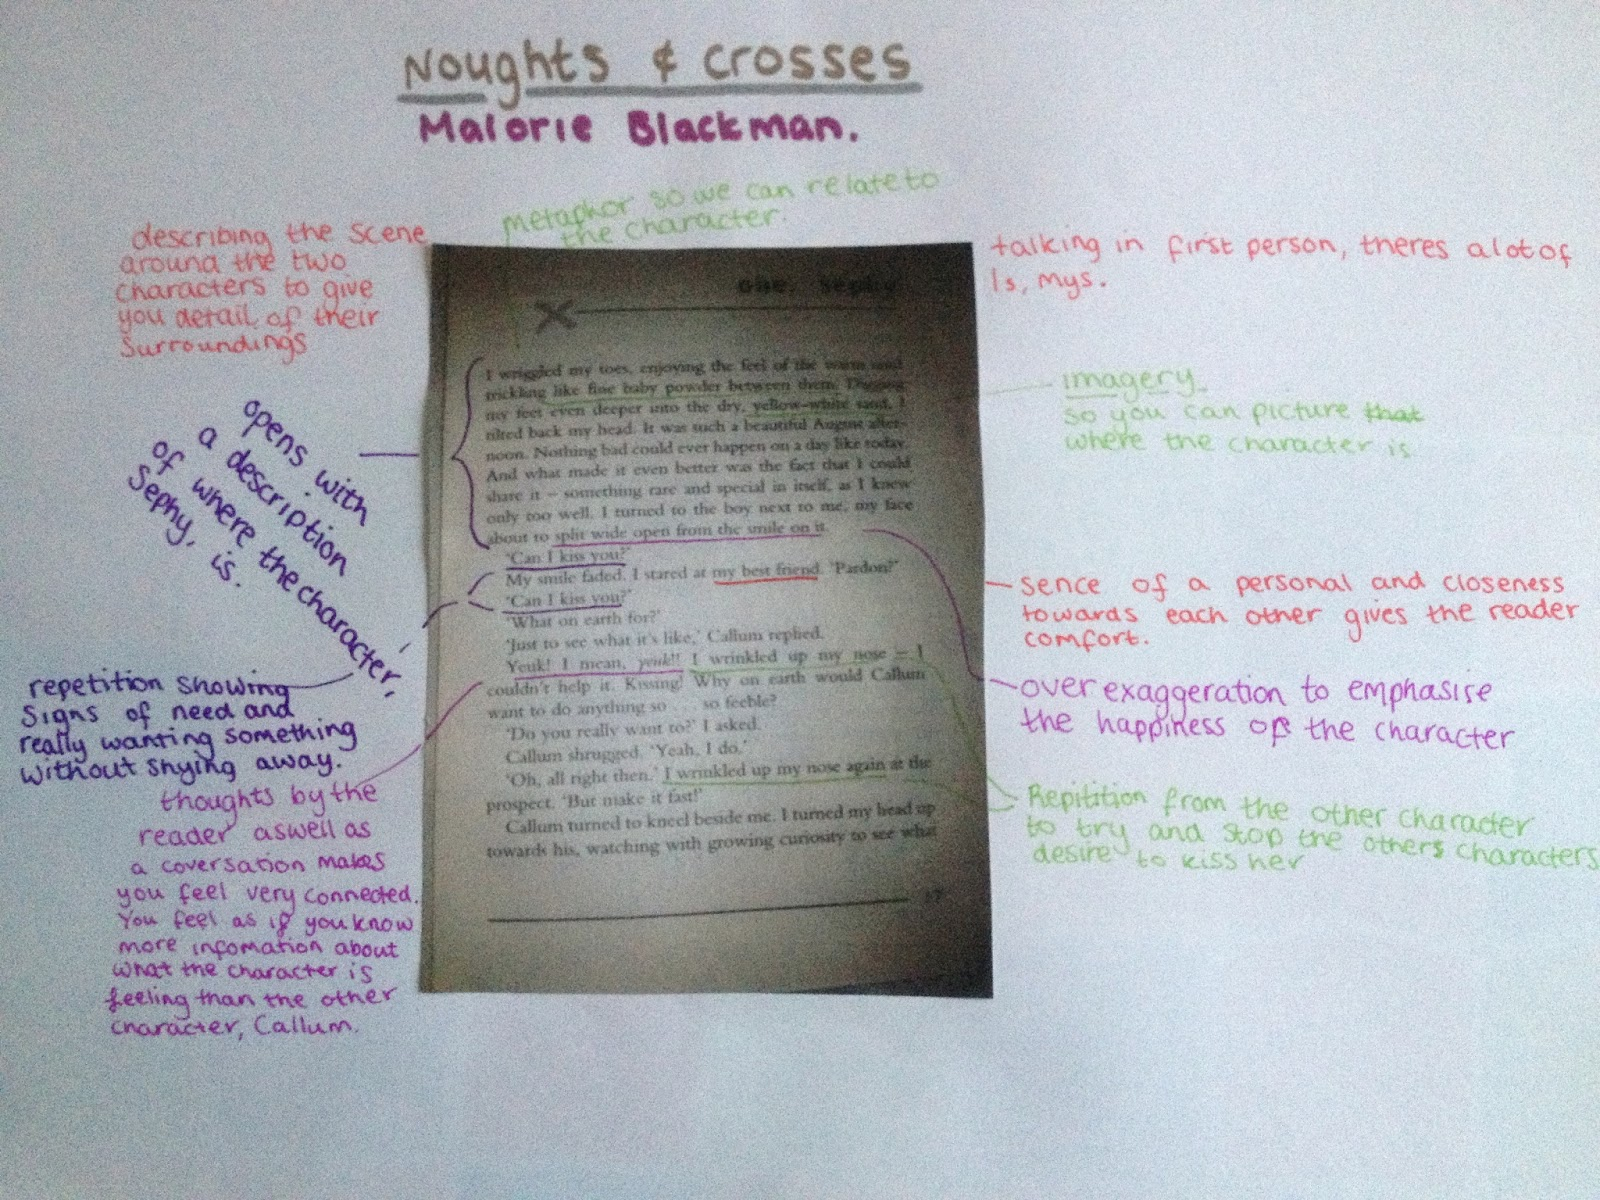 essay about noughts and crosses Noughts and crosses by malorie blackman is a novel which follows the lives and experiences of two characters, callum and sephy throughout the book blackman deals with a number of issues including relationships, alcohol abuse, power.